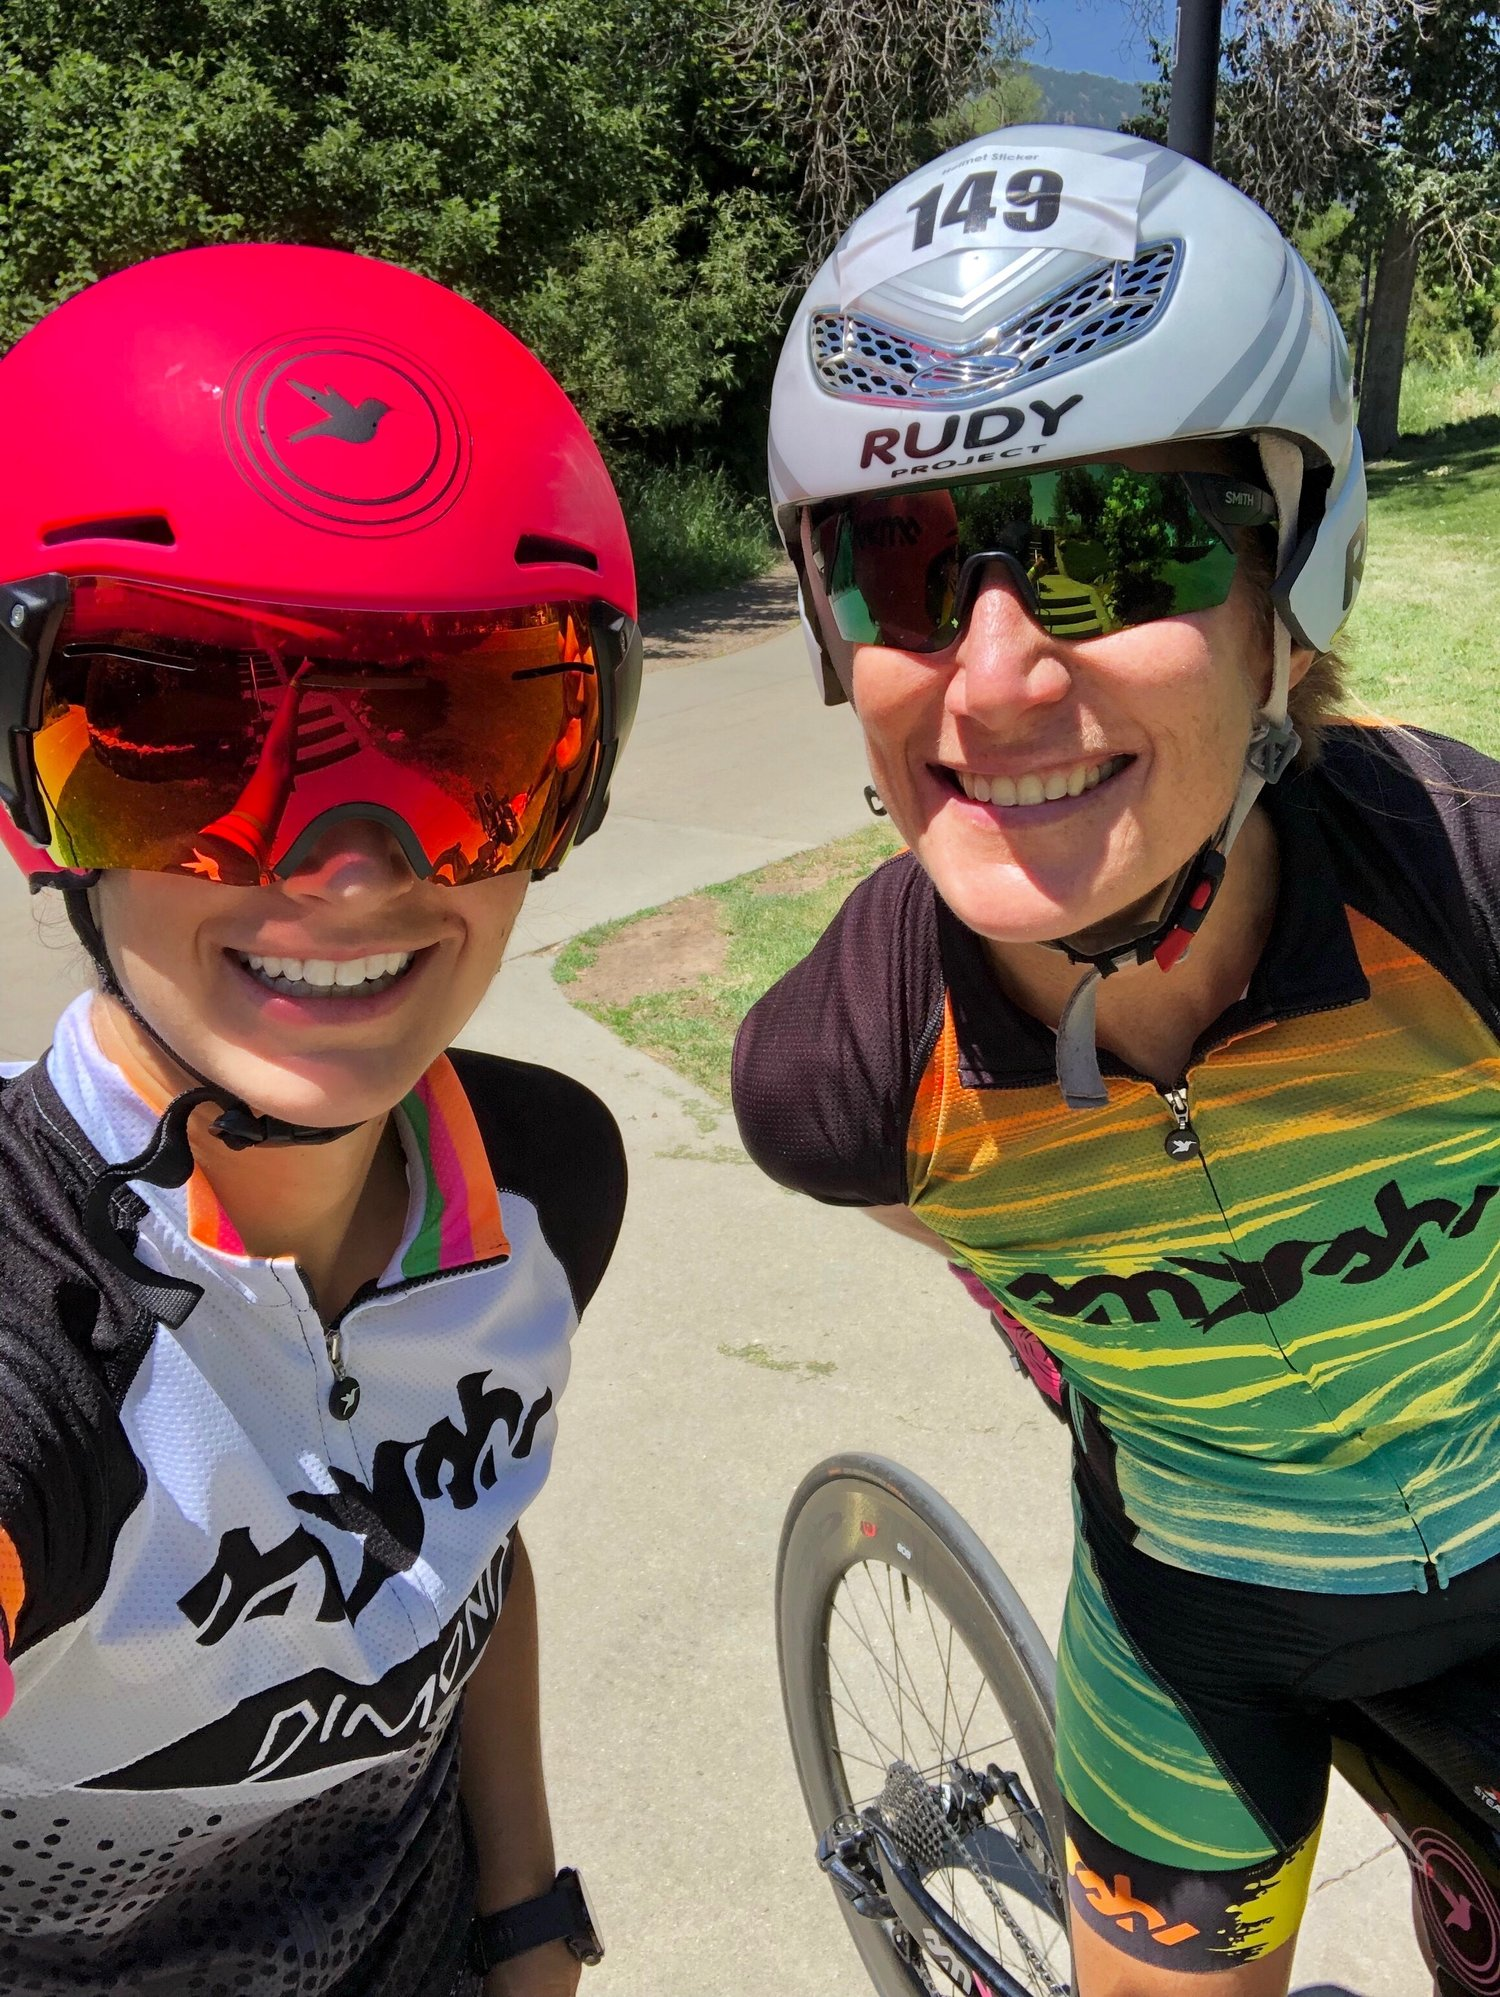 Lauren and a CU Alum just after finishing a pre-race ride along Boulder Creek. Photo credit goes to Lauren Palmer.